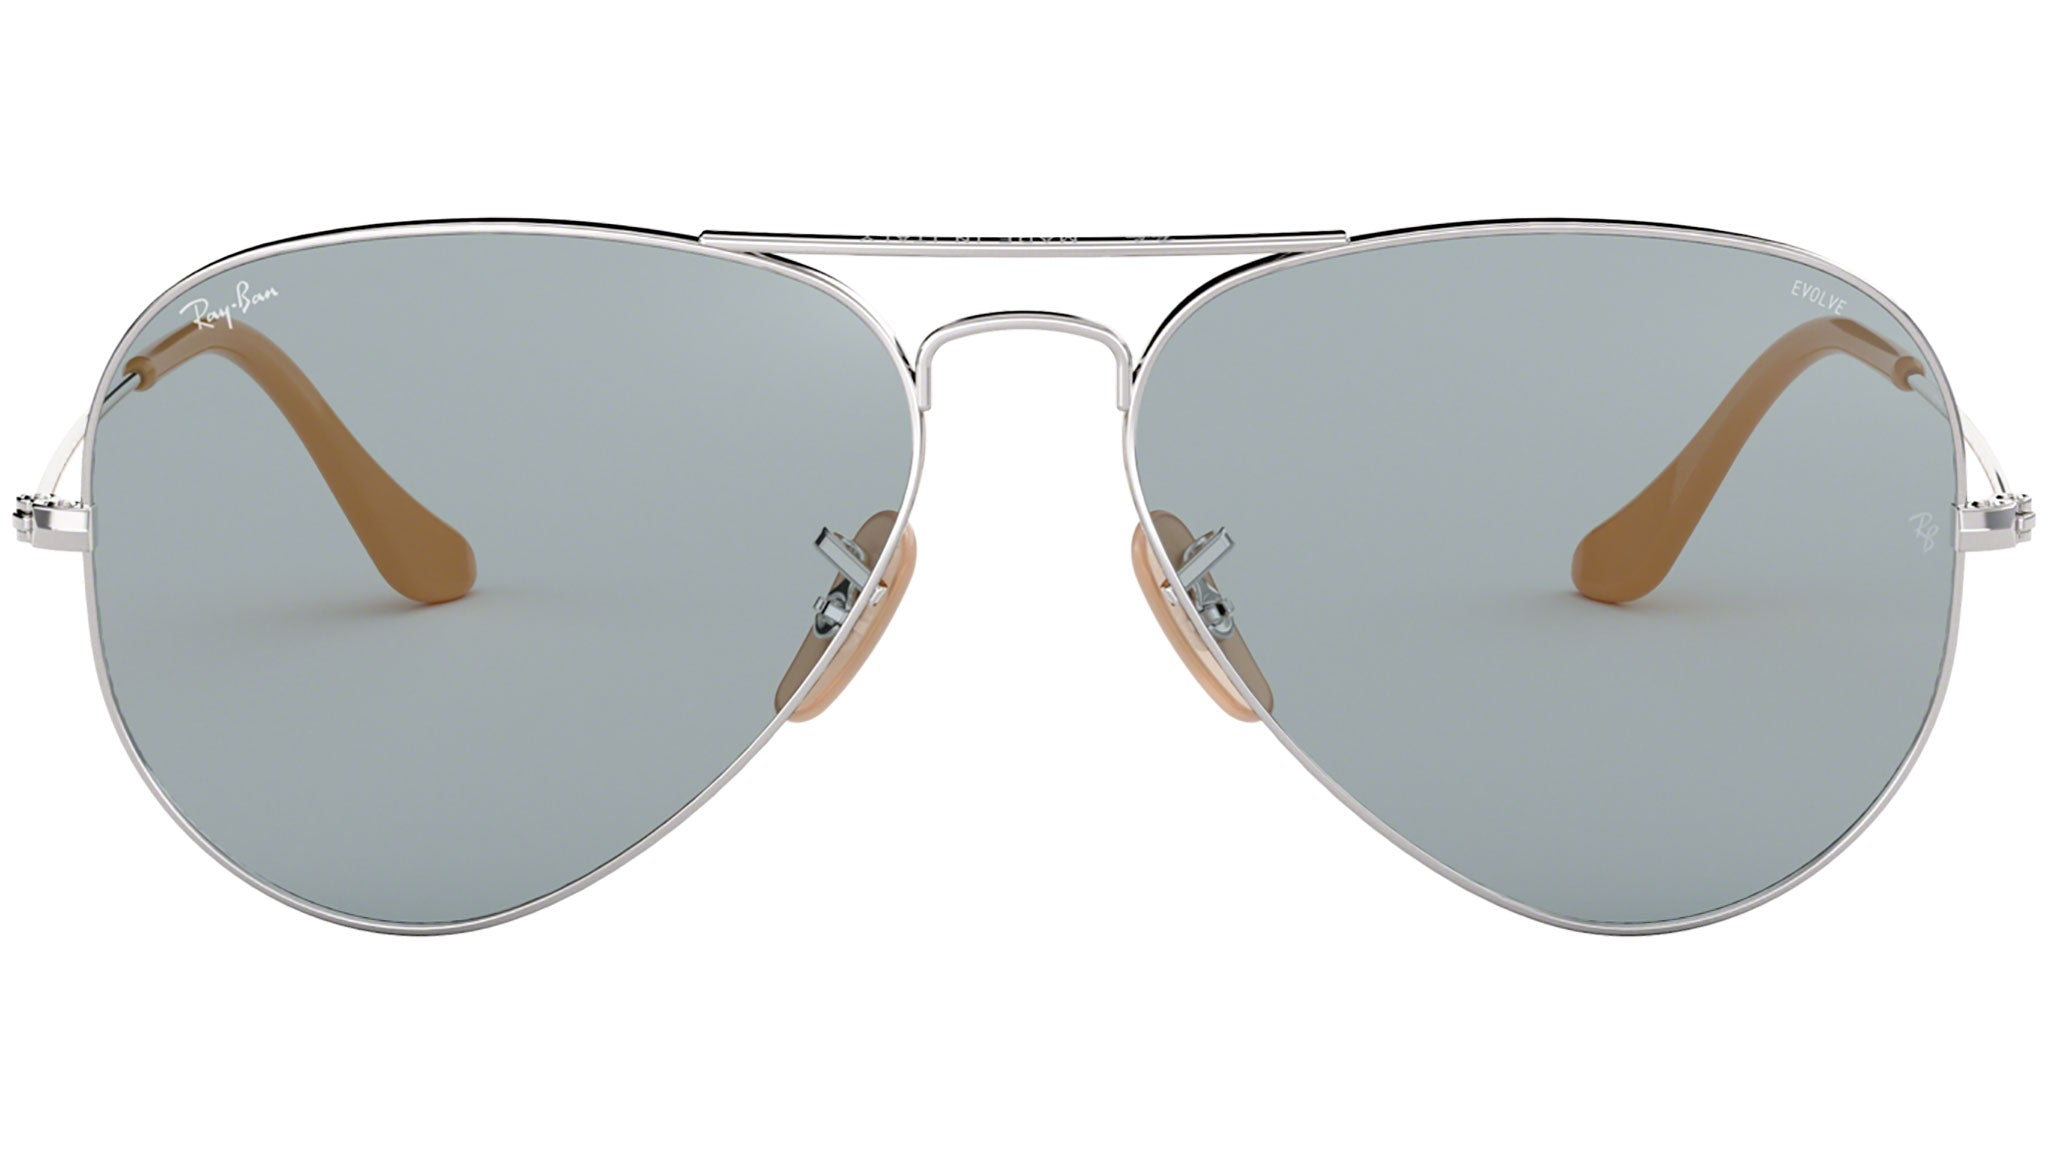 Aviator Washed Evolve RB3025 silver and blue